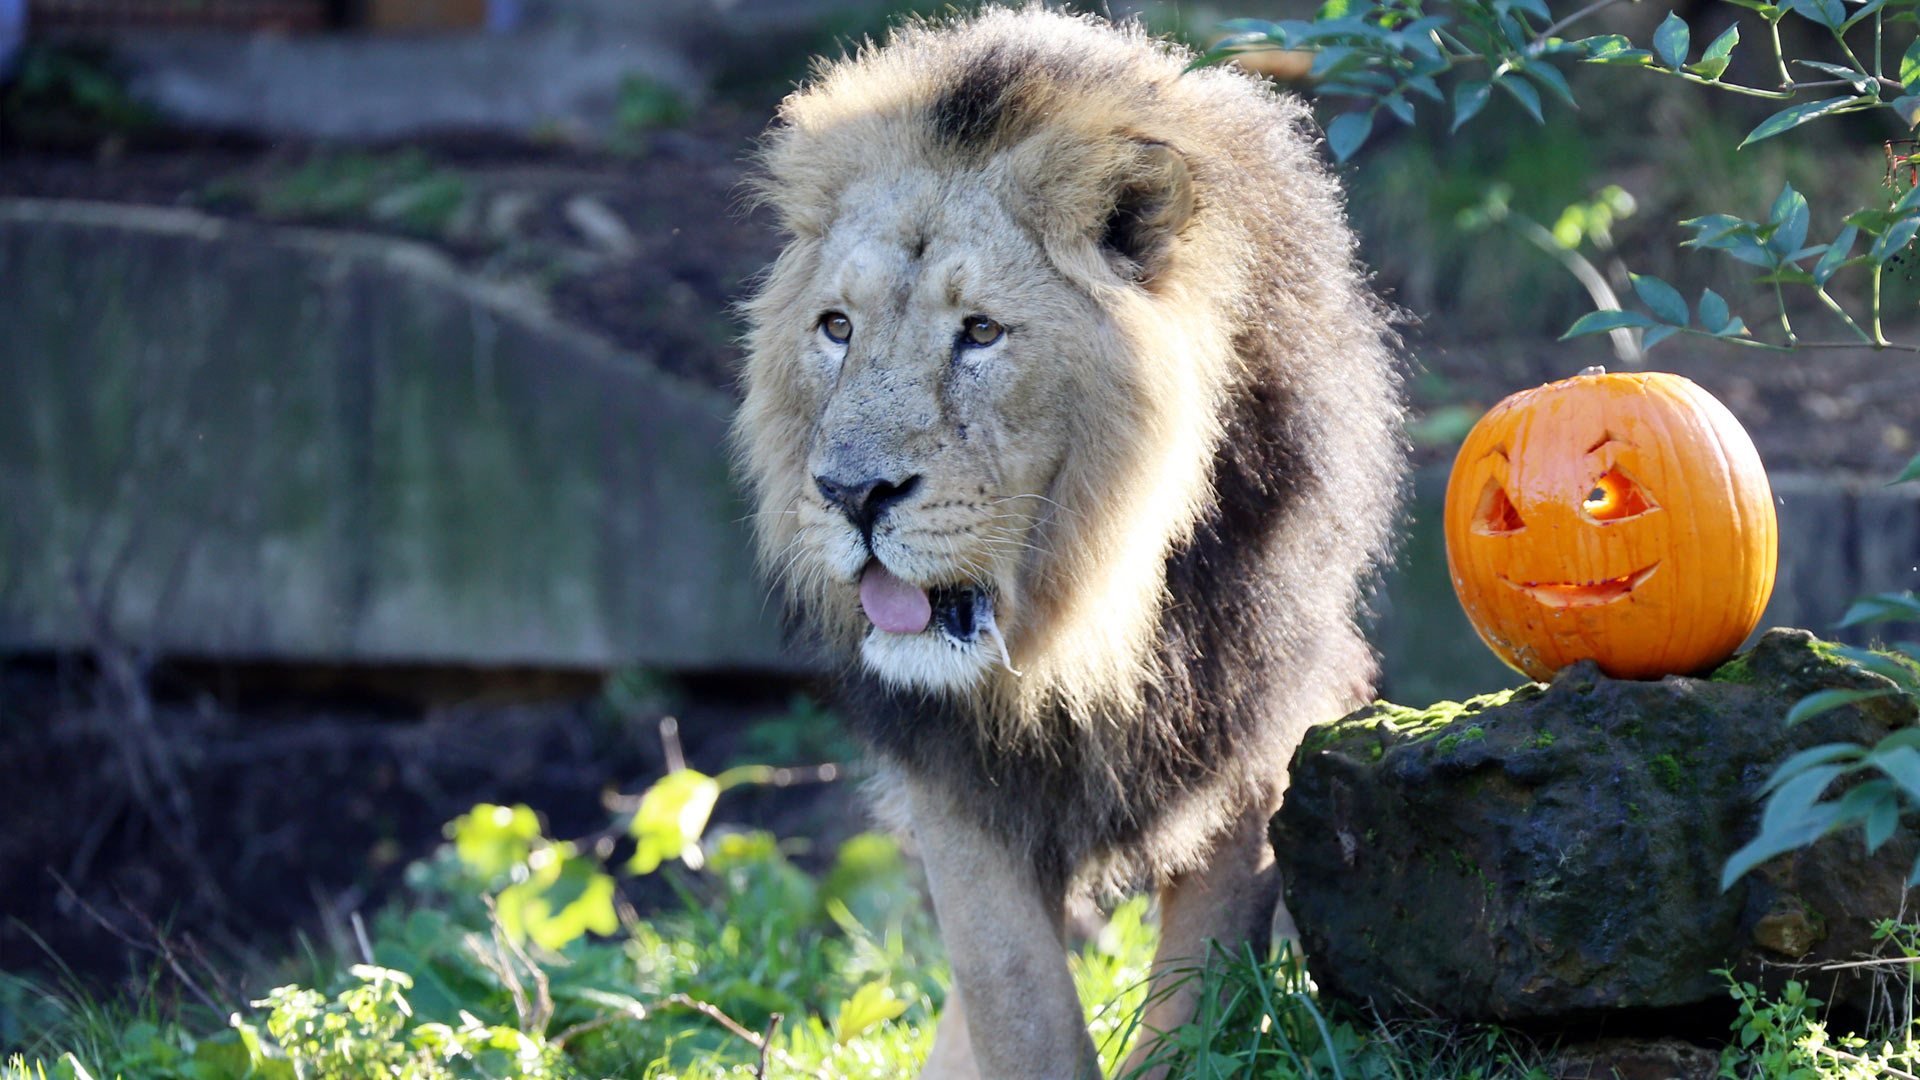 Boo at the Zoo! for October Half Term